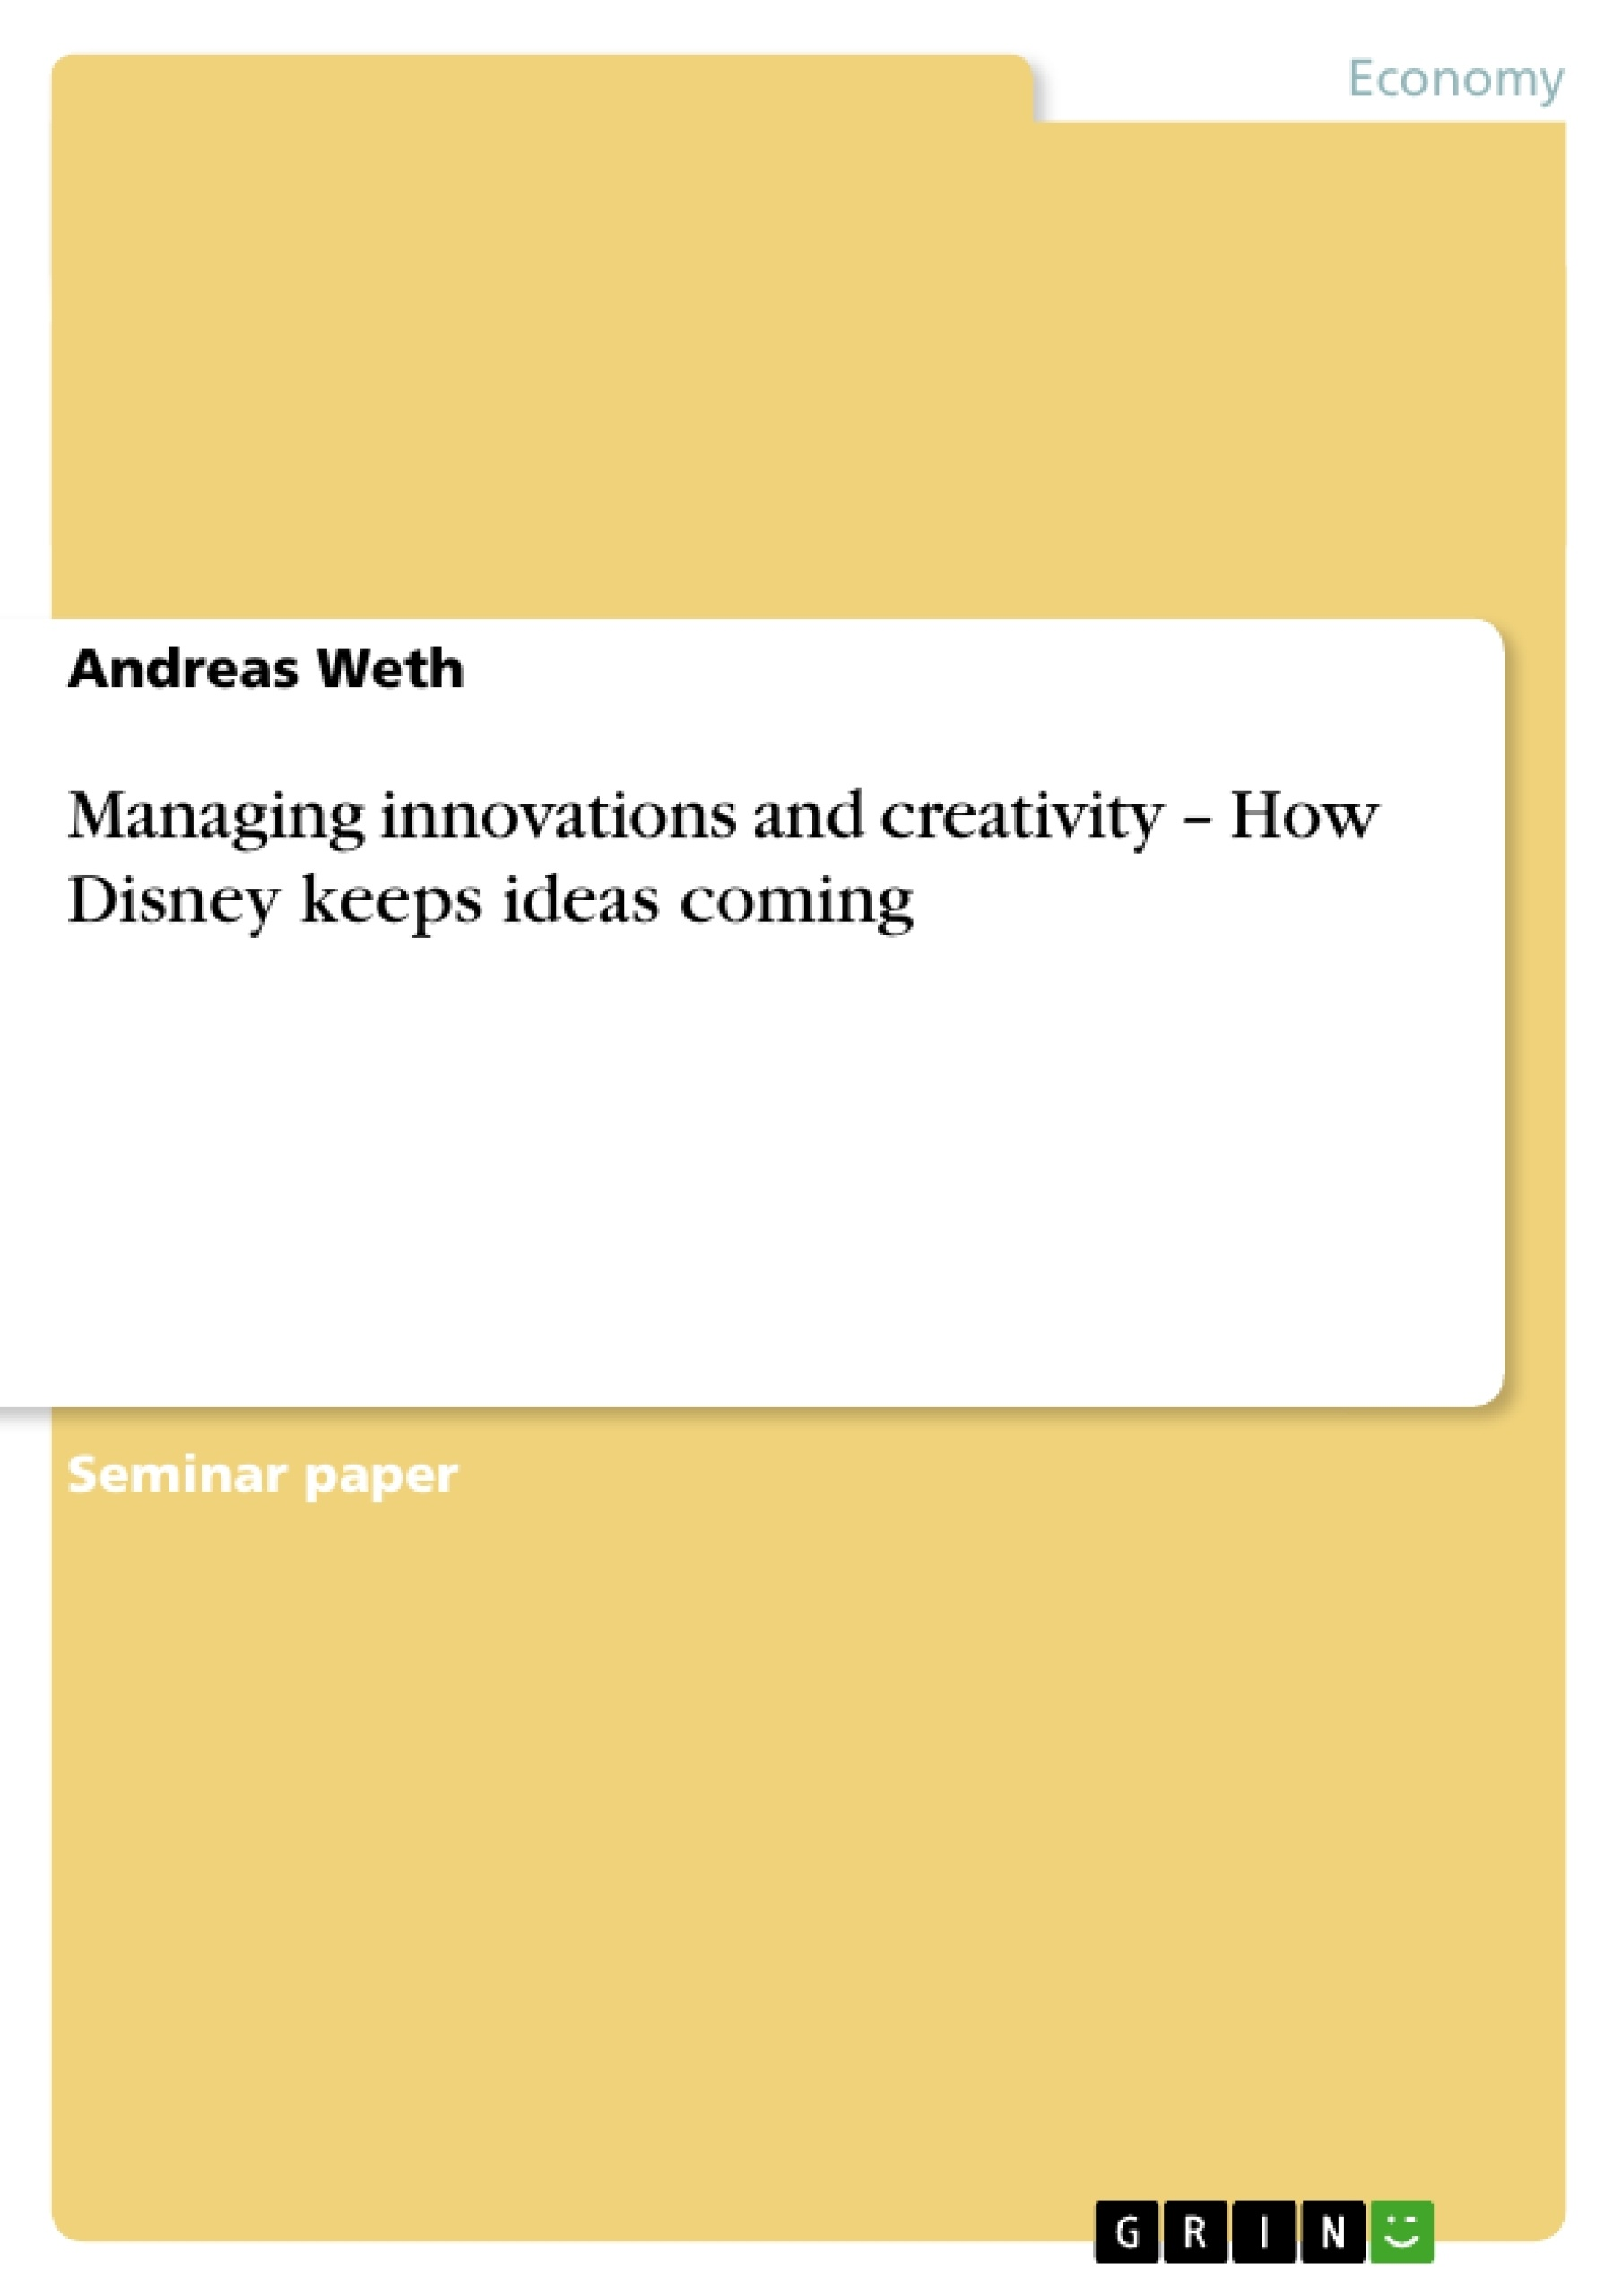 Title: Managing innovations and creativity – How Disney keeps ideas coming